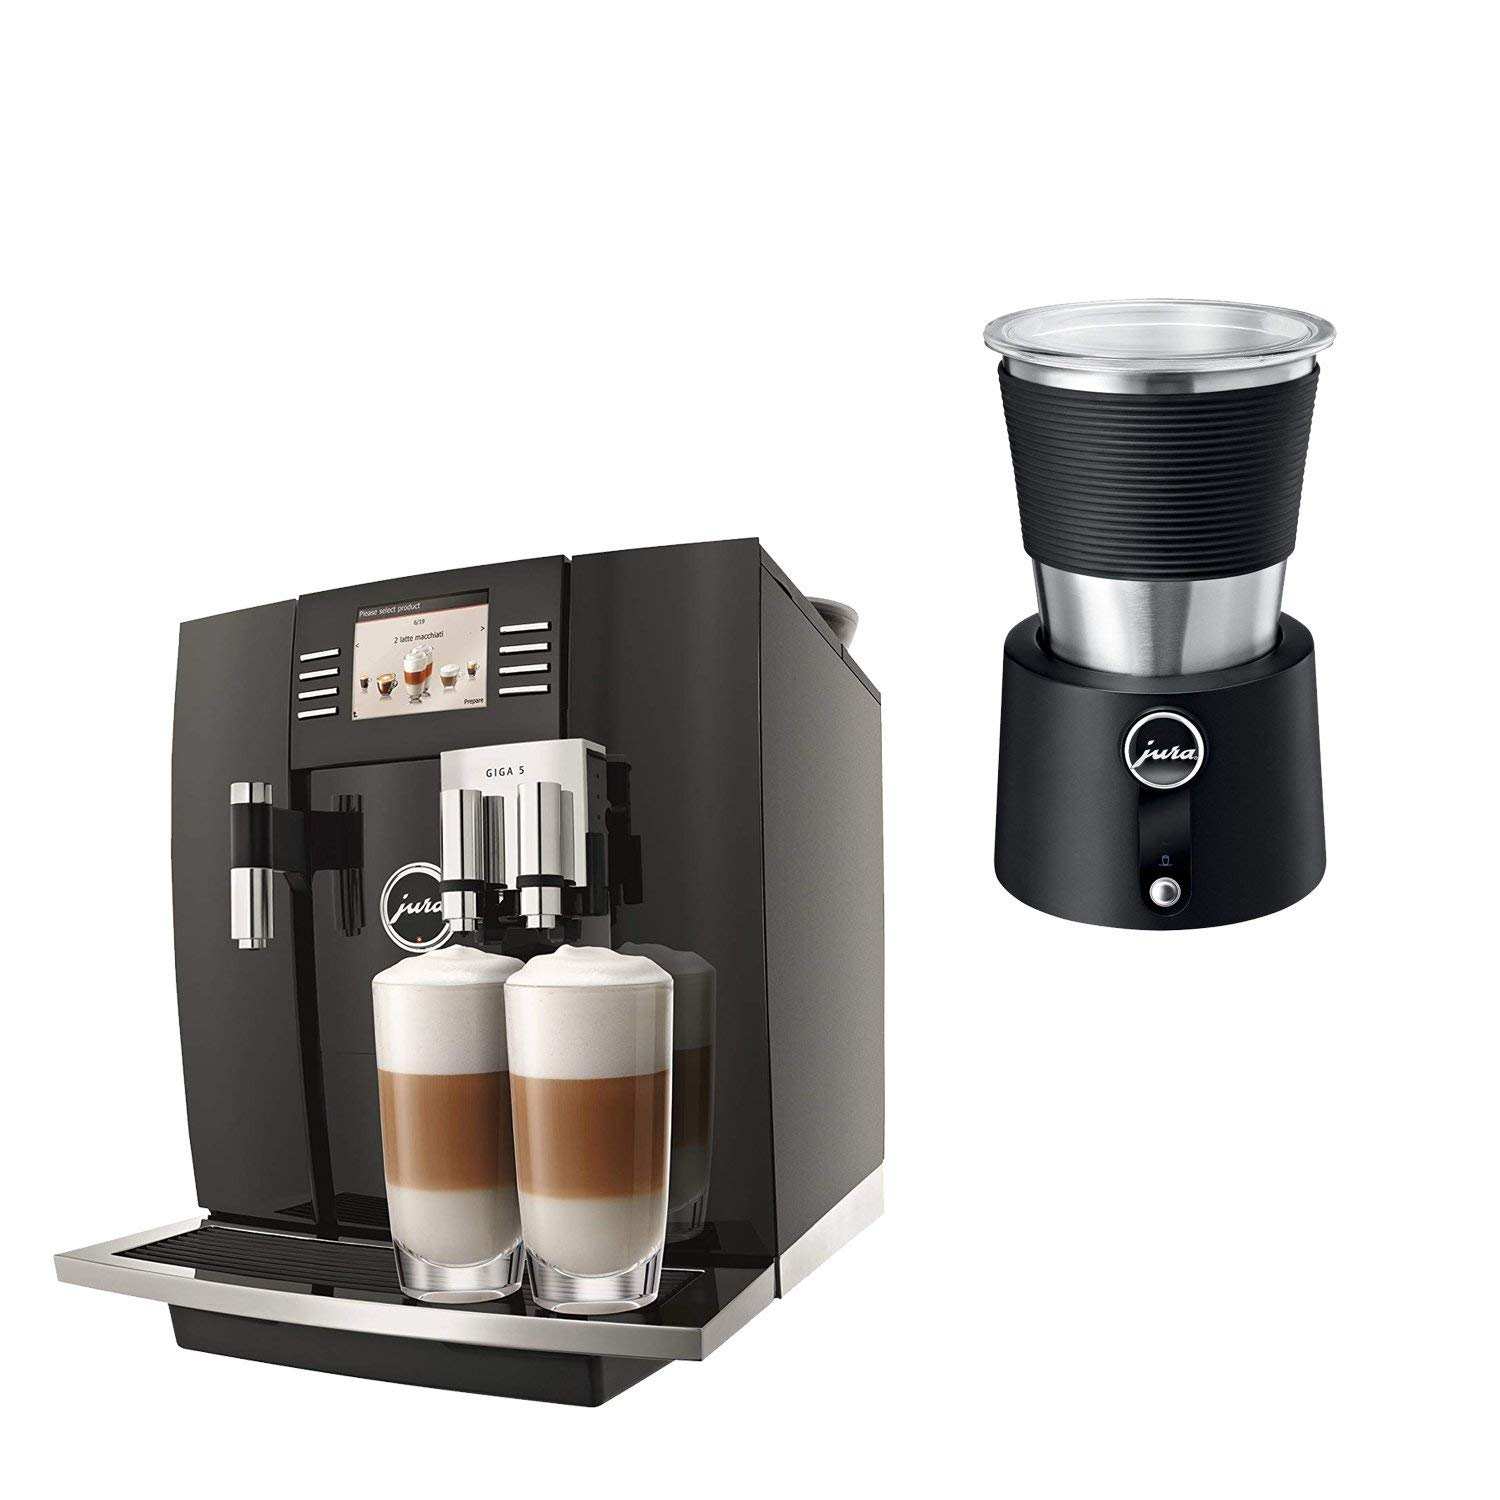 Jura 15066 Automatic Coffee Machine Giga 5, Piano Black with Automatic Milk Frother